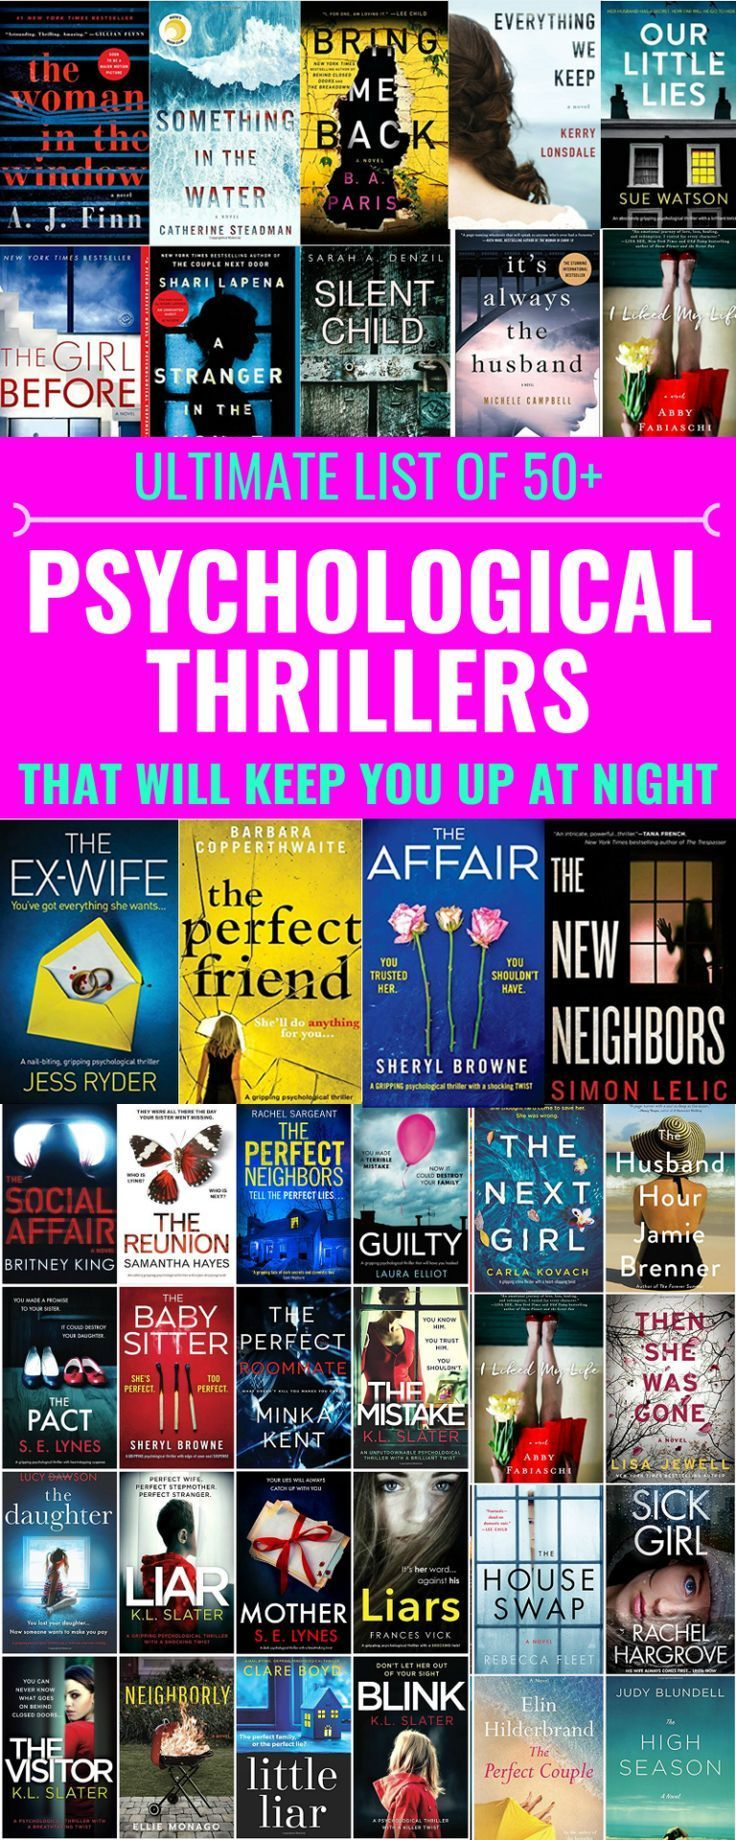 Ultimate List Of 50+ Psychological Thrillers To Re…